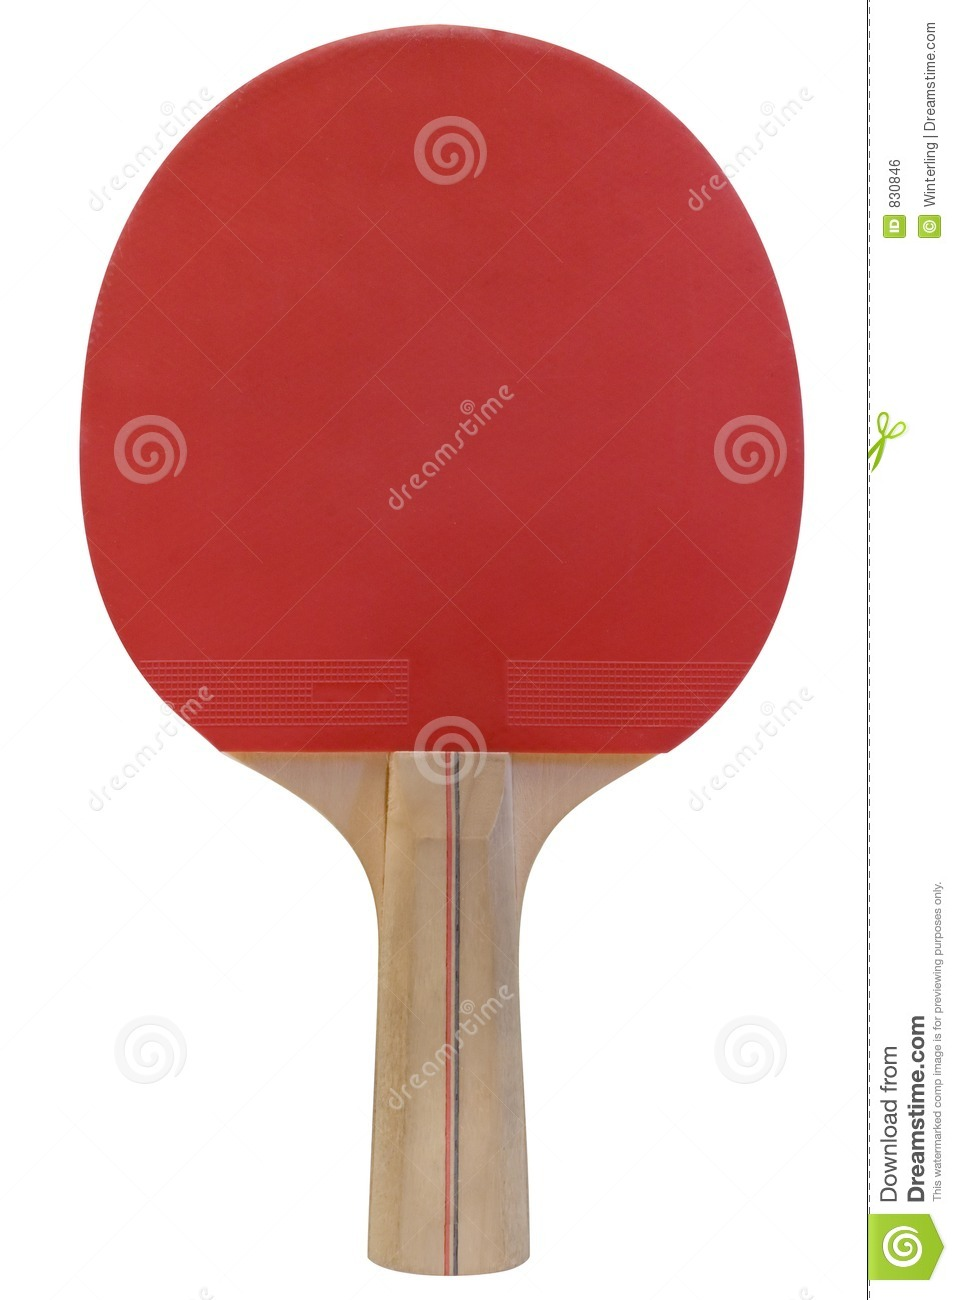 Ping Pong Paddle w/ Path